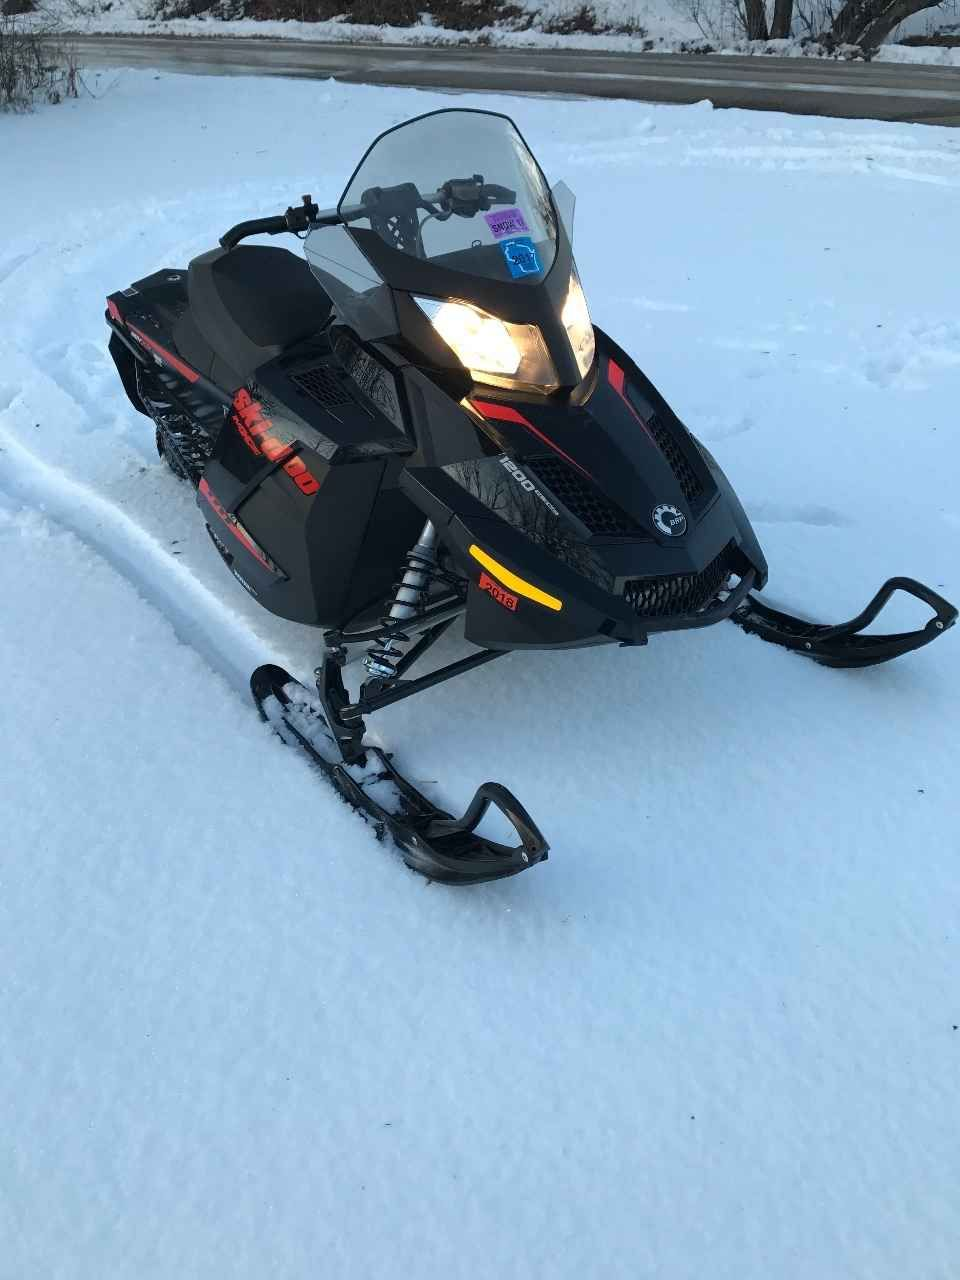 Used 2015 Ski Doo Mx Z Tnt 1200 Snowmobile For Sale In Wisconsin Wi 2 537 Miles Cover Spare Belt New Carbides And Added Carbides O Snowmobile Skiing Wisconsin